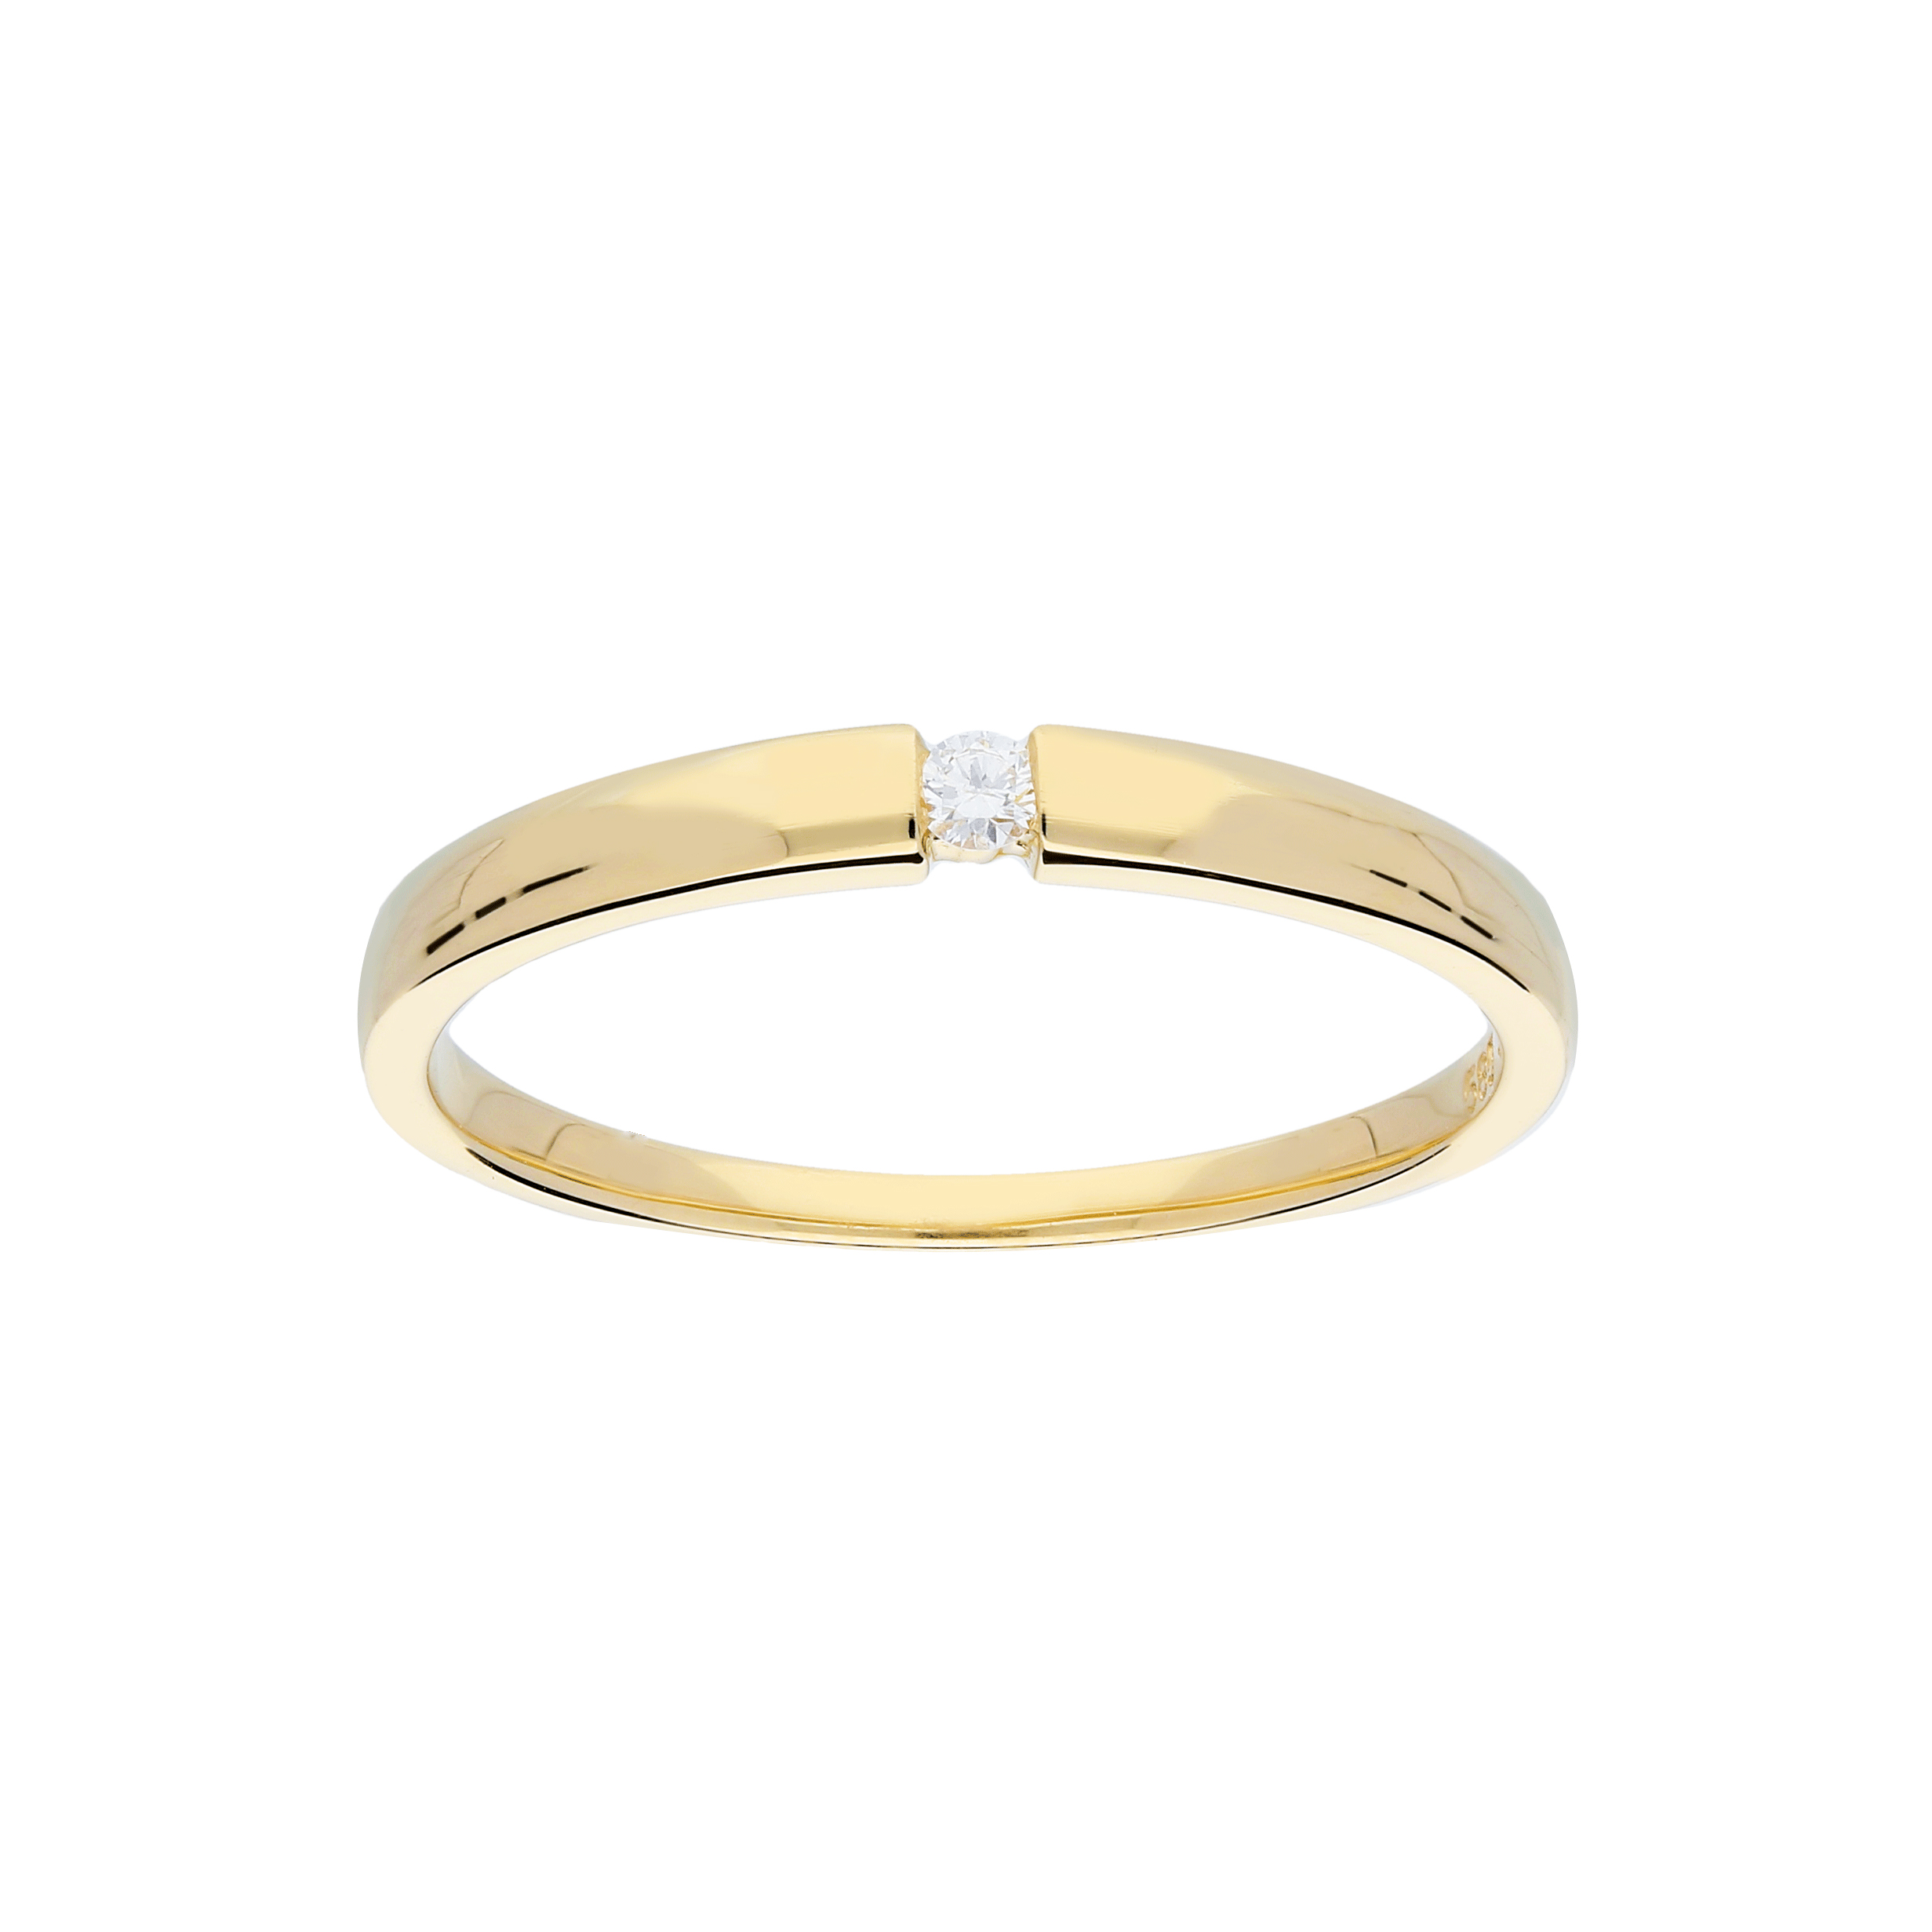 Glow Gouden Ring Glanzend Diamant 1 0.03ct G si 214.2007.58